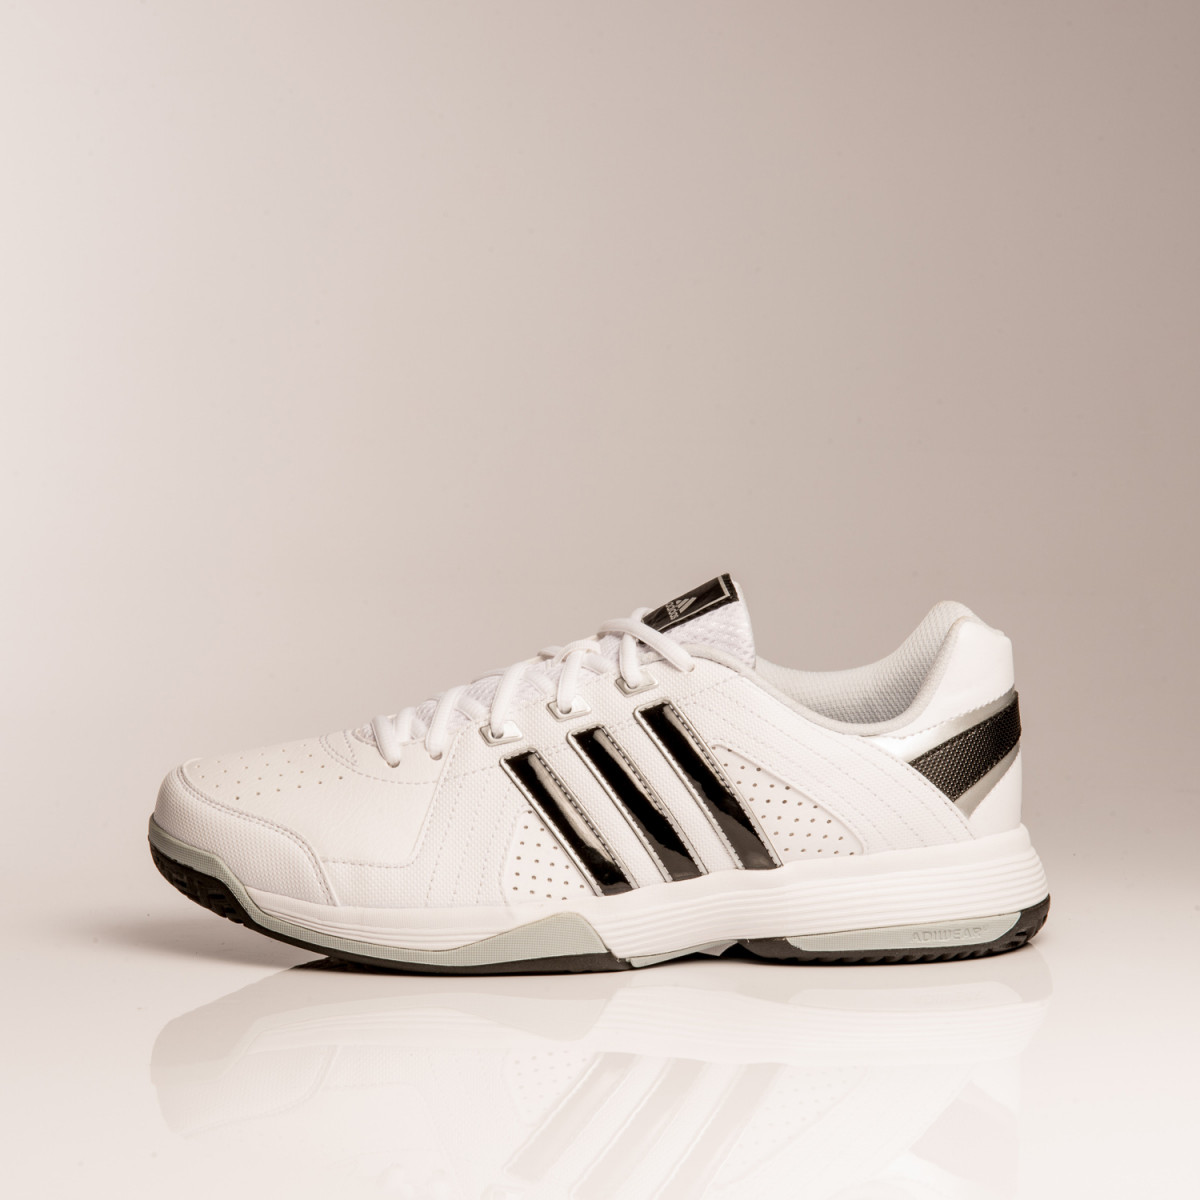 ZAPATILLAS ADIDAS RESPONSE APPROACH STR RN